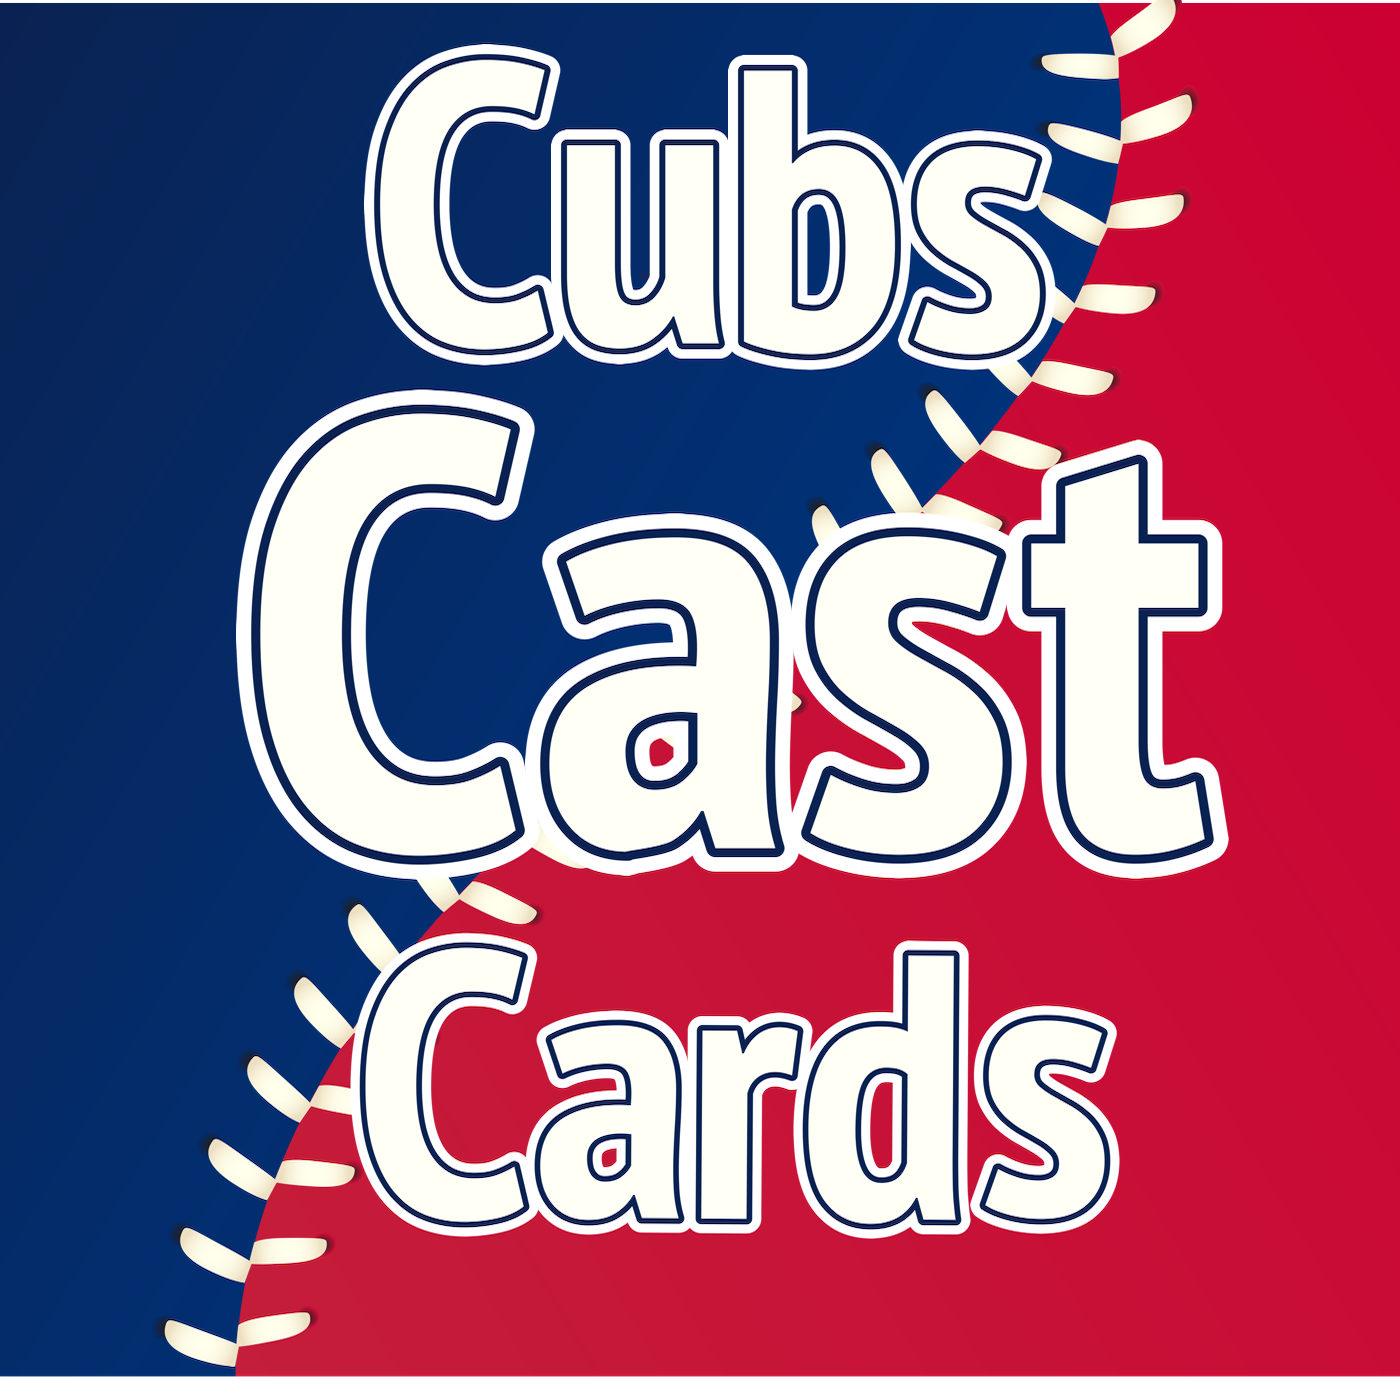 Cubs Cards Cast